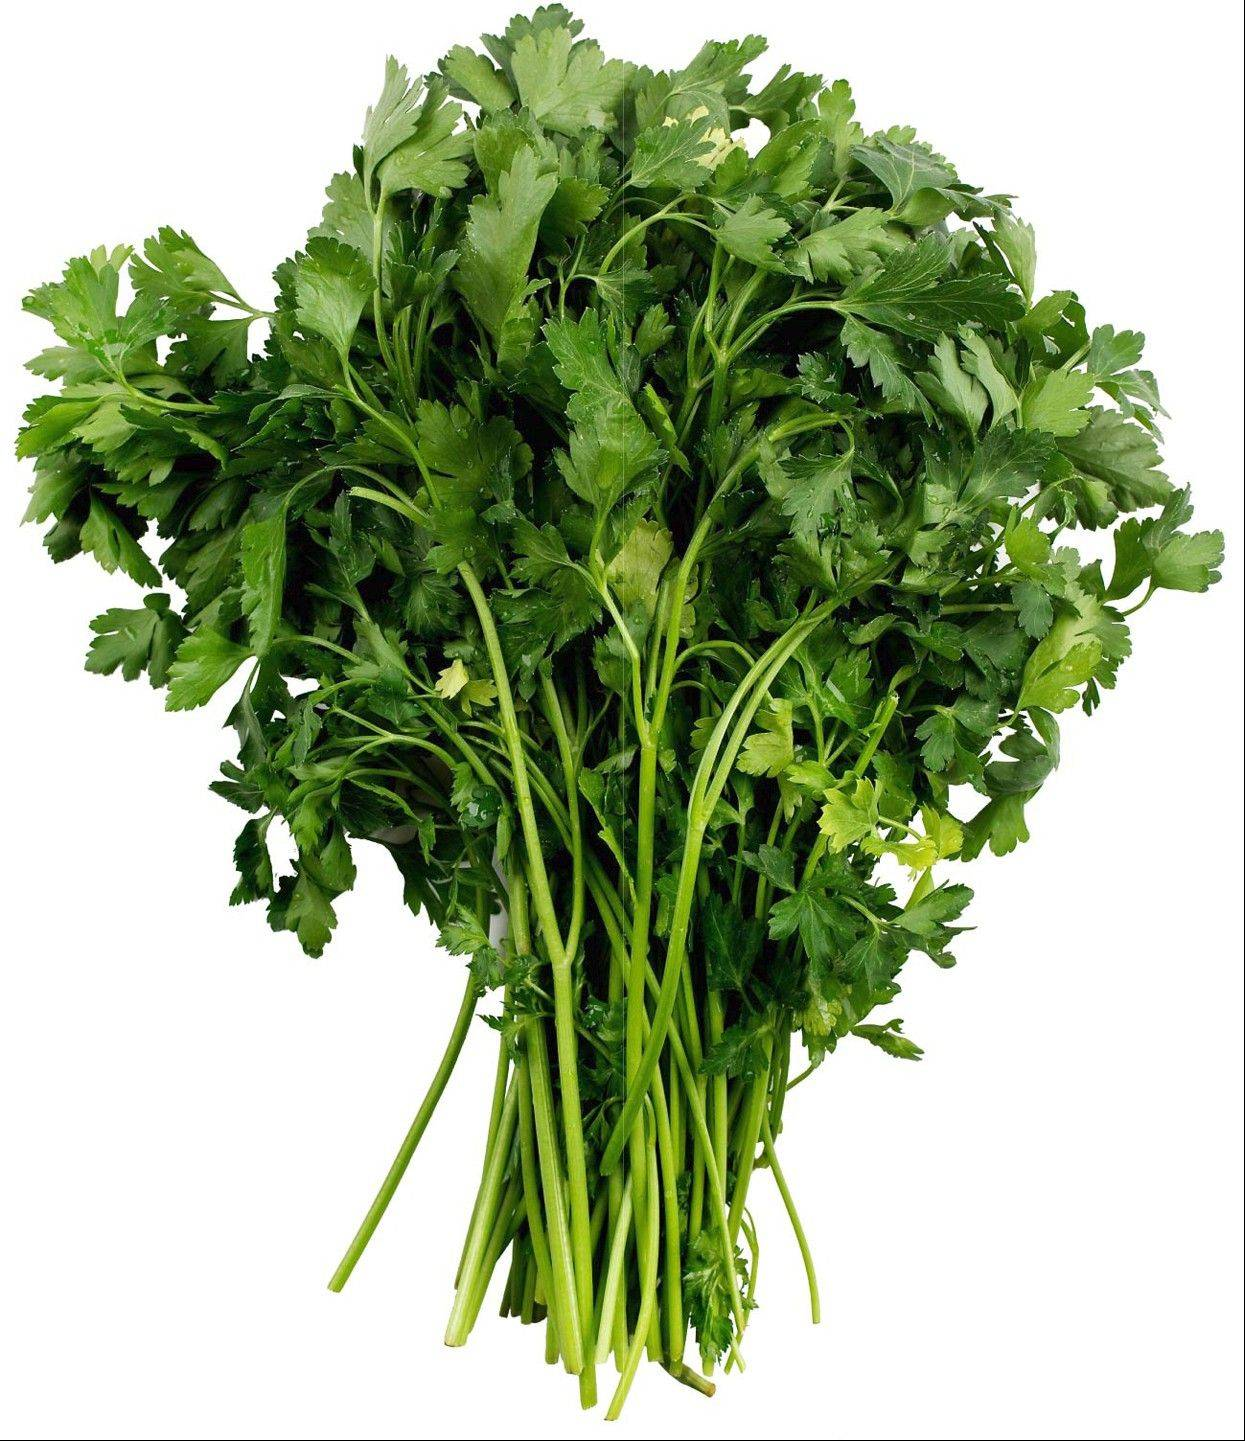 Parsley deserves a starring role on your plate